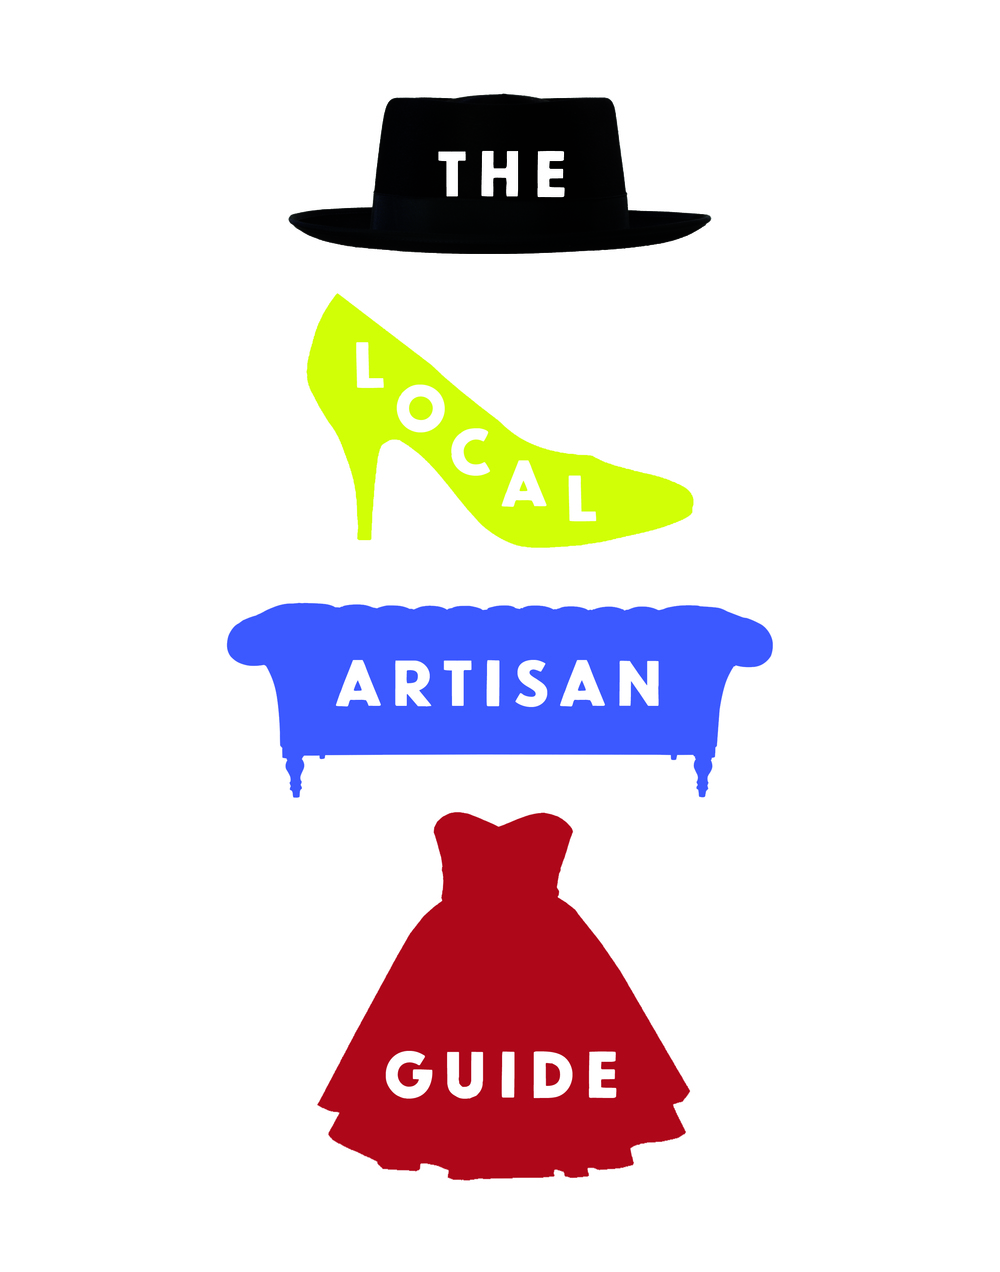 The Local Artisan Guide